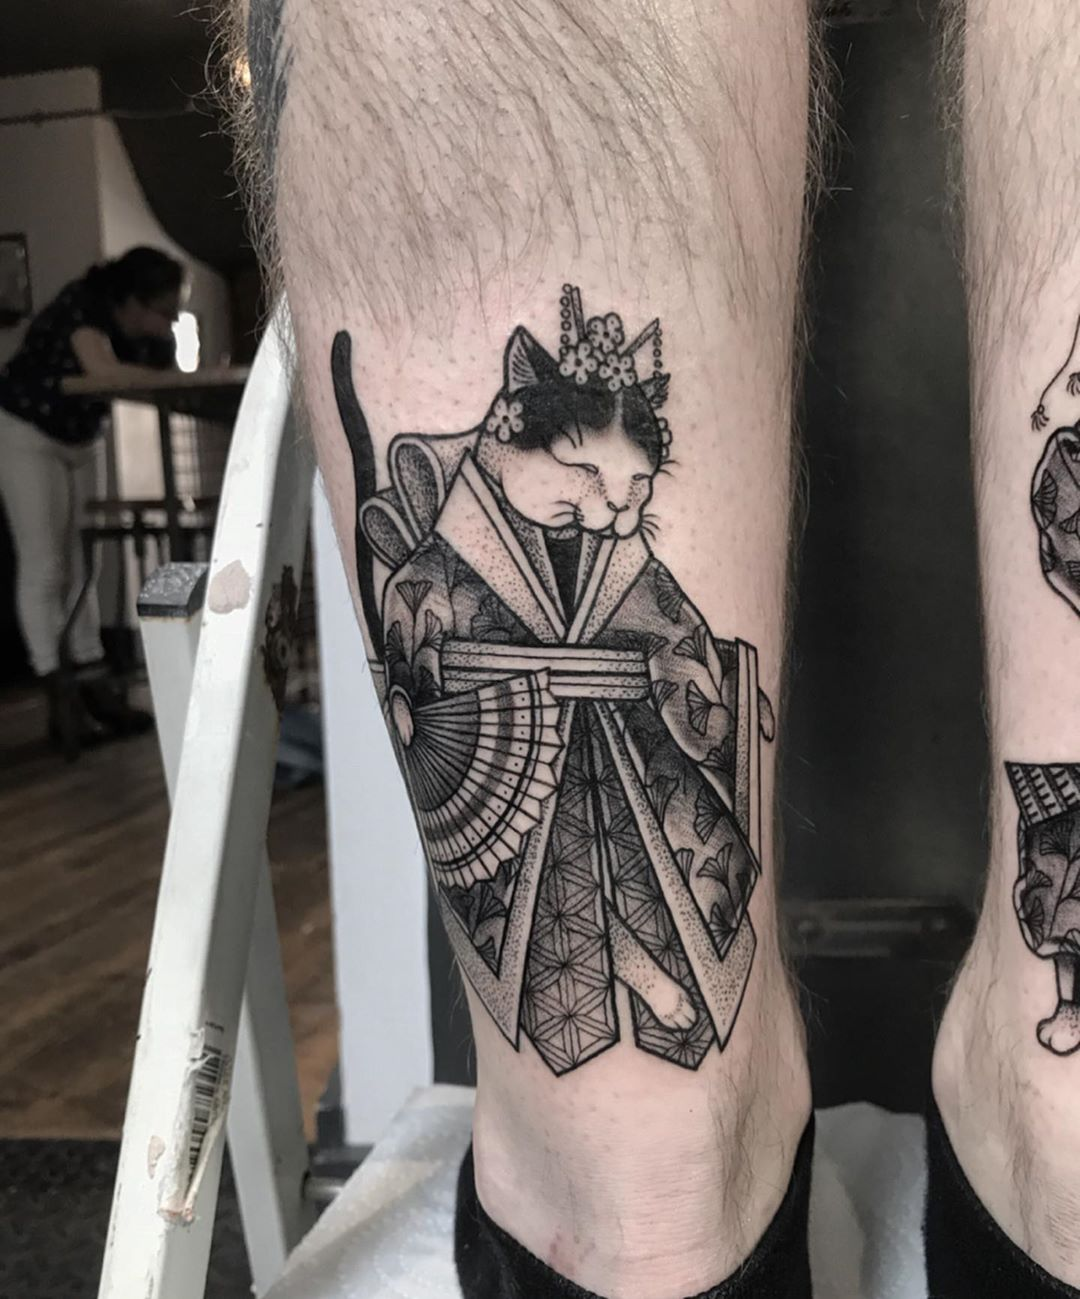 Japanese Tattoo of Cat in a Kimono